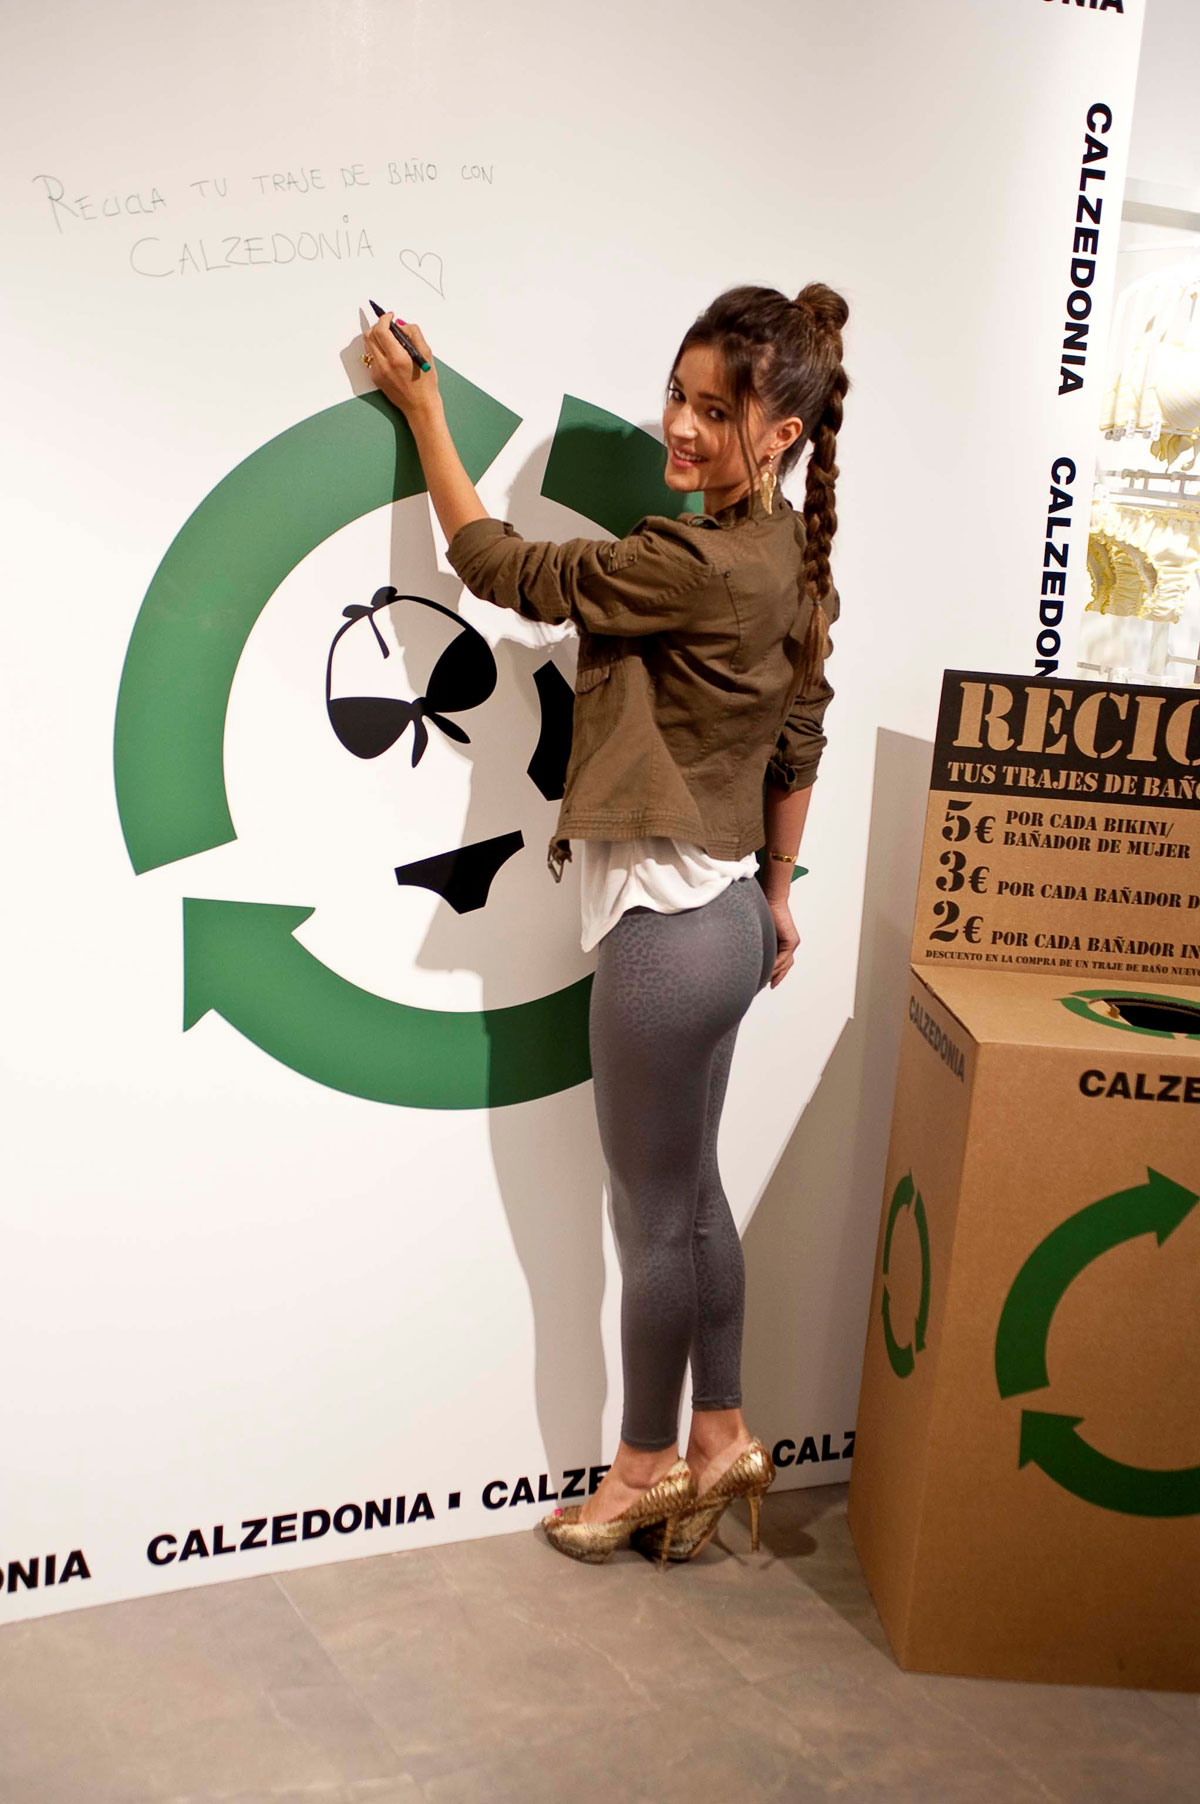 MALENA COSTA     Calzedonia Recycled Campaign-03 - Full SizeMalena Costa Recycle